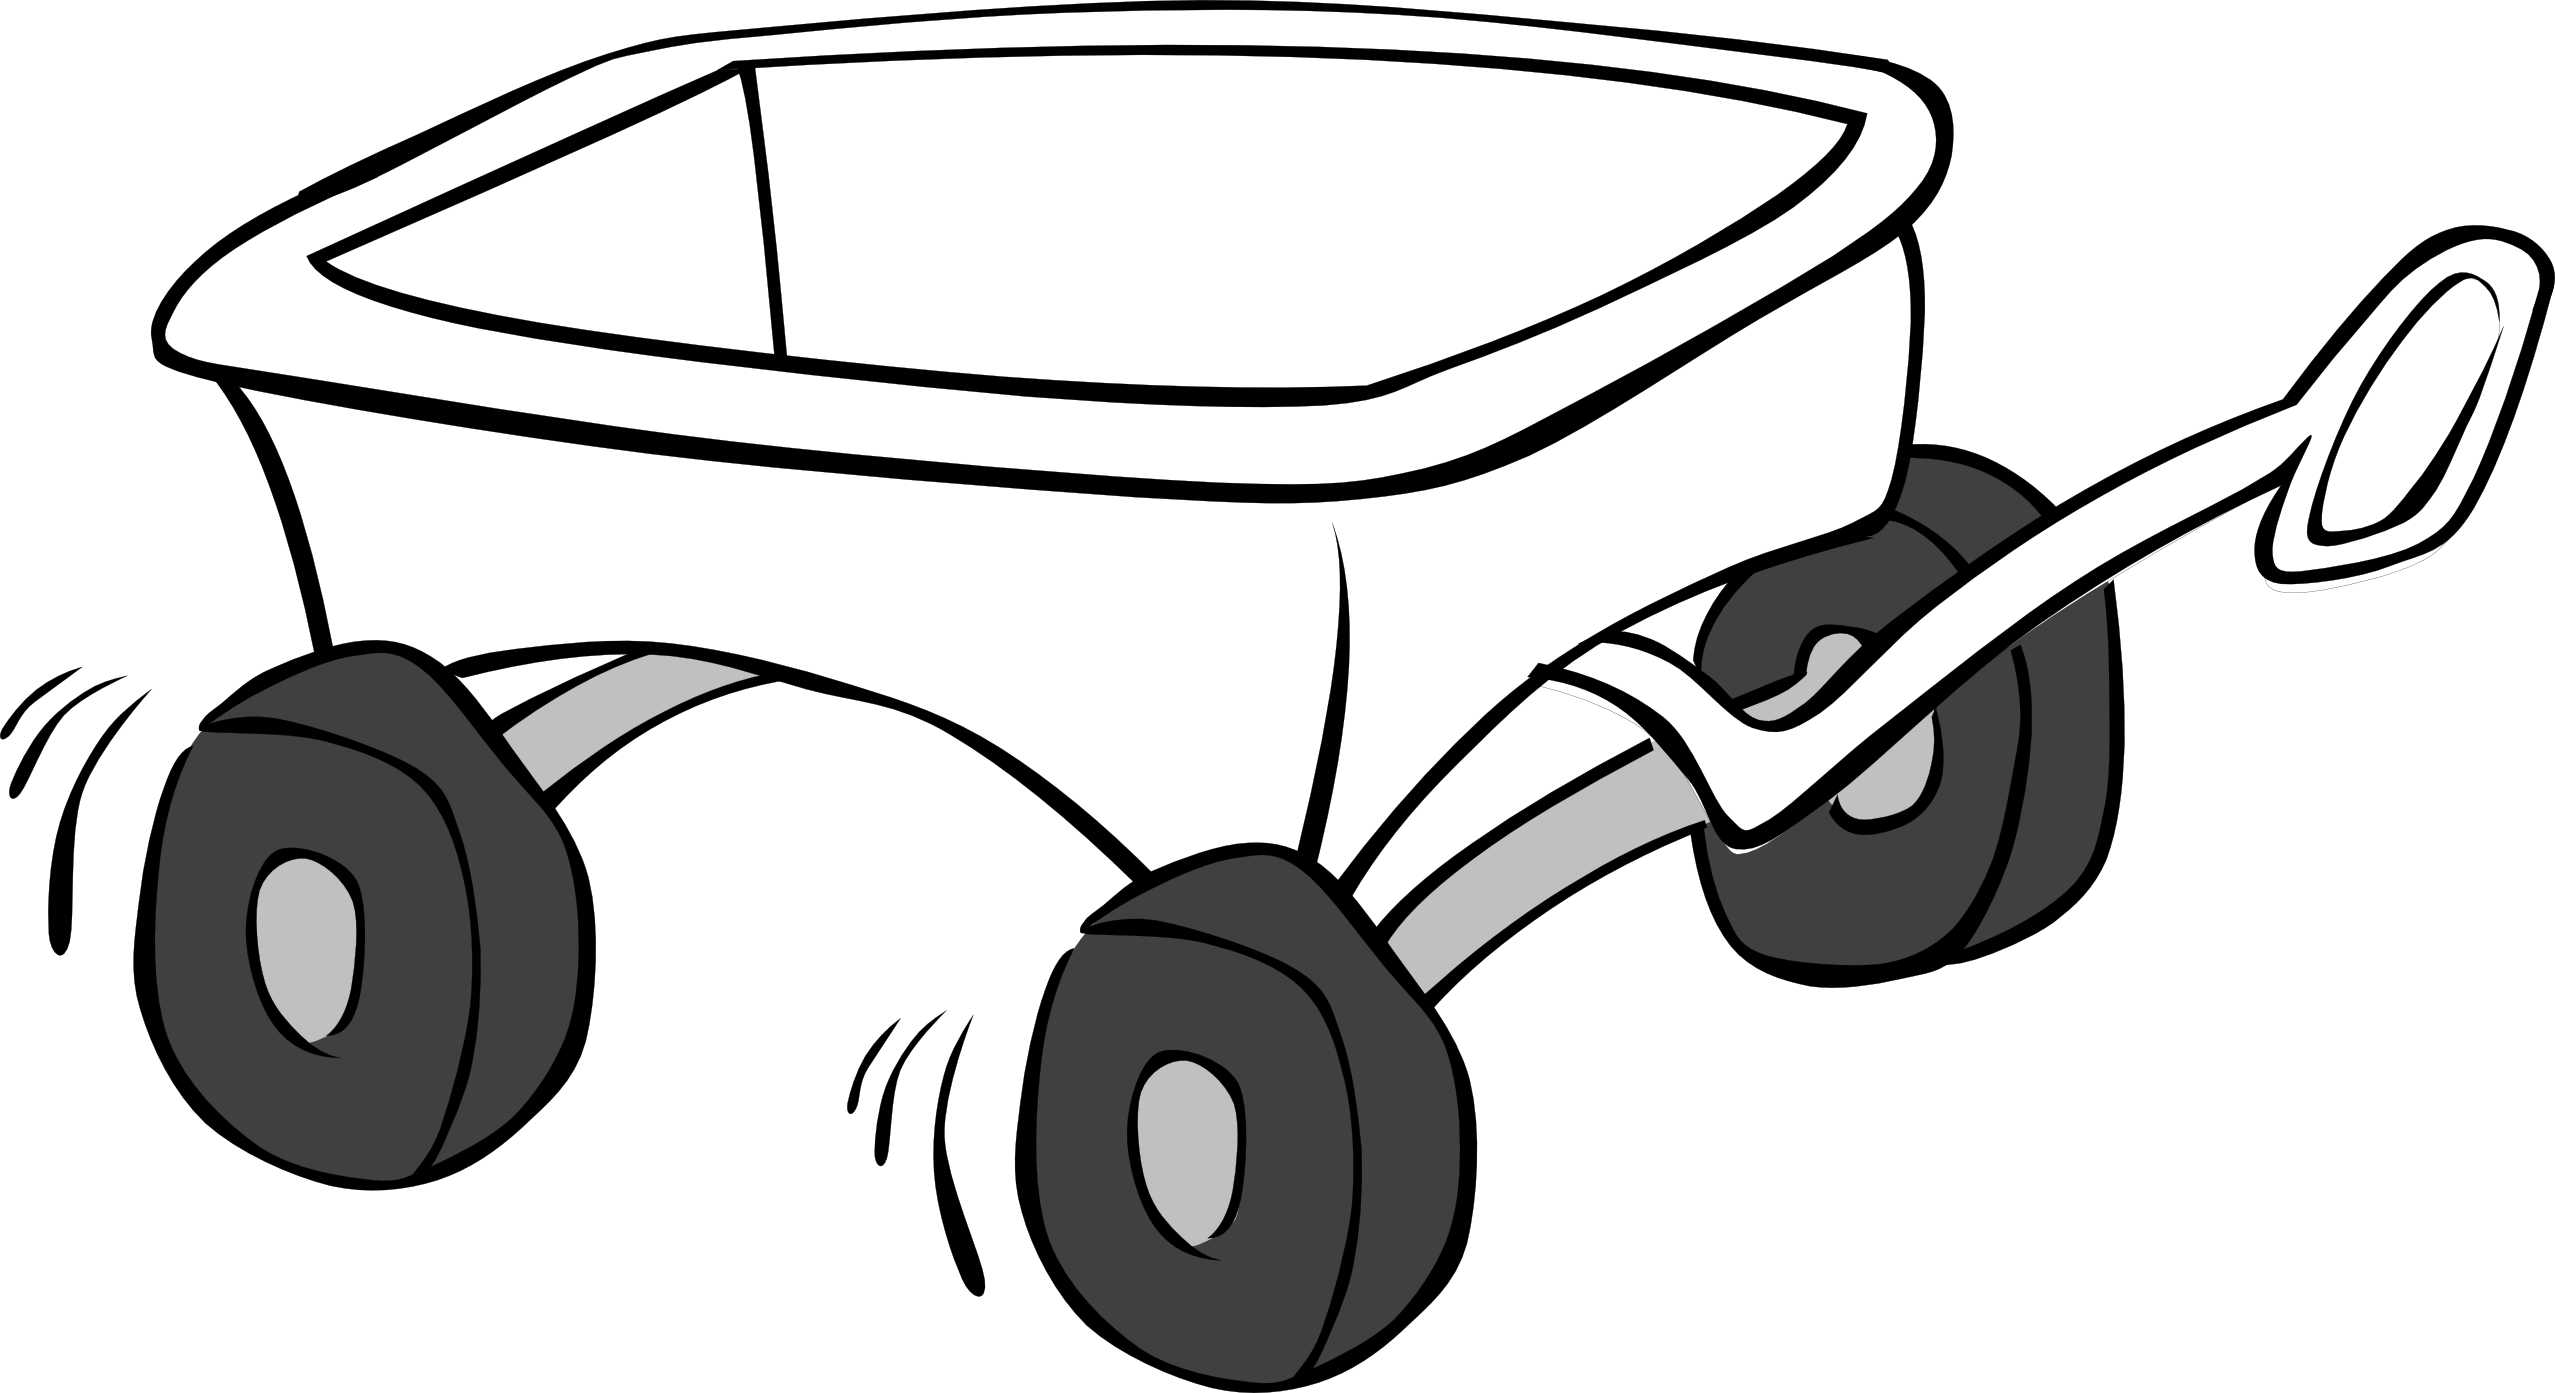 Images For > Wagon Clip Art Black And White